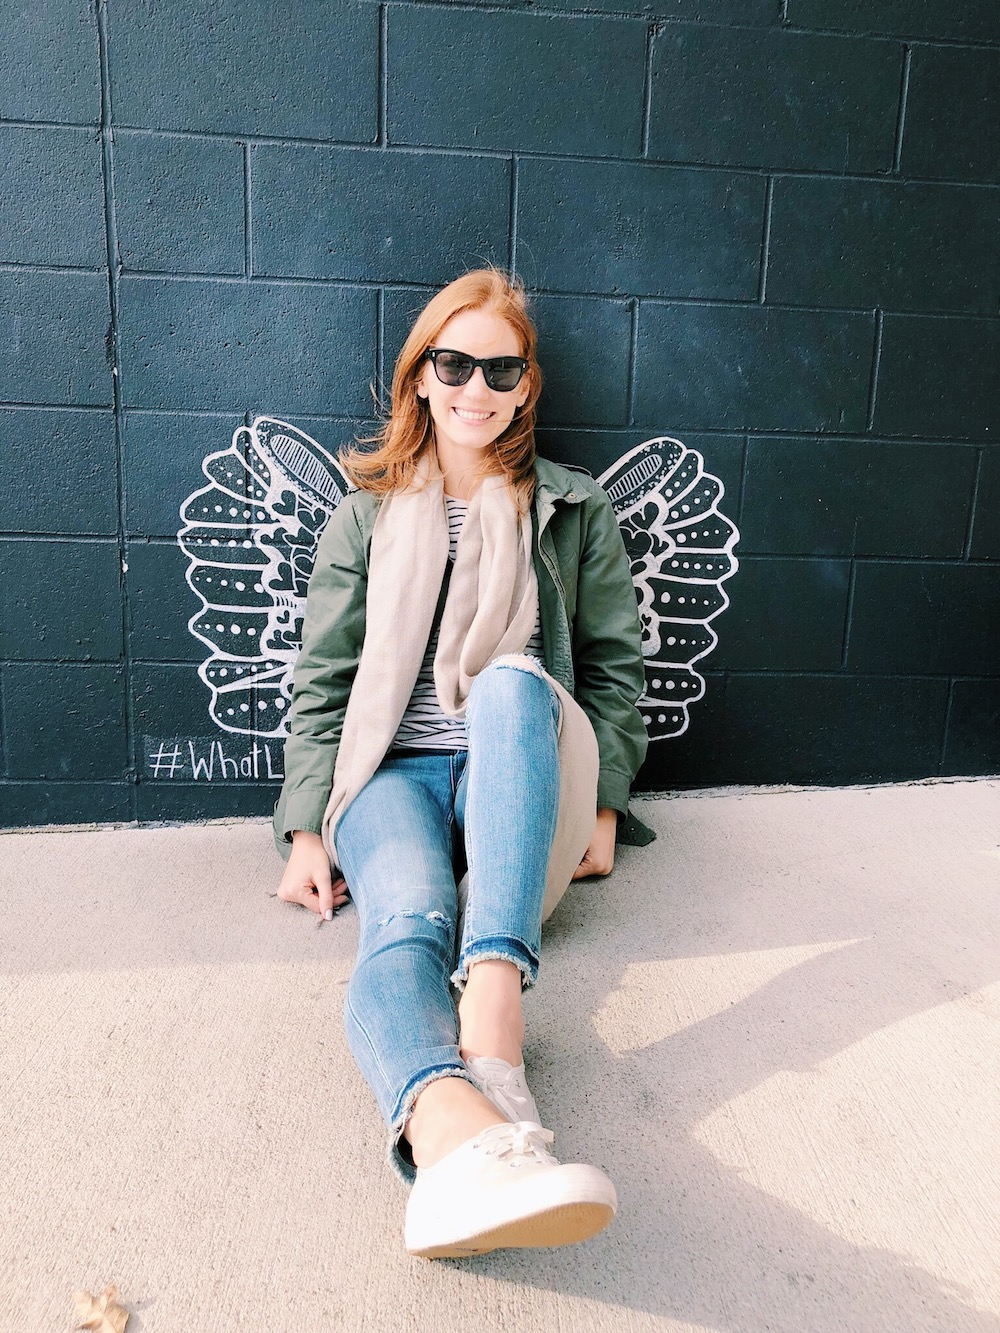 Girl sitting by white wing mural